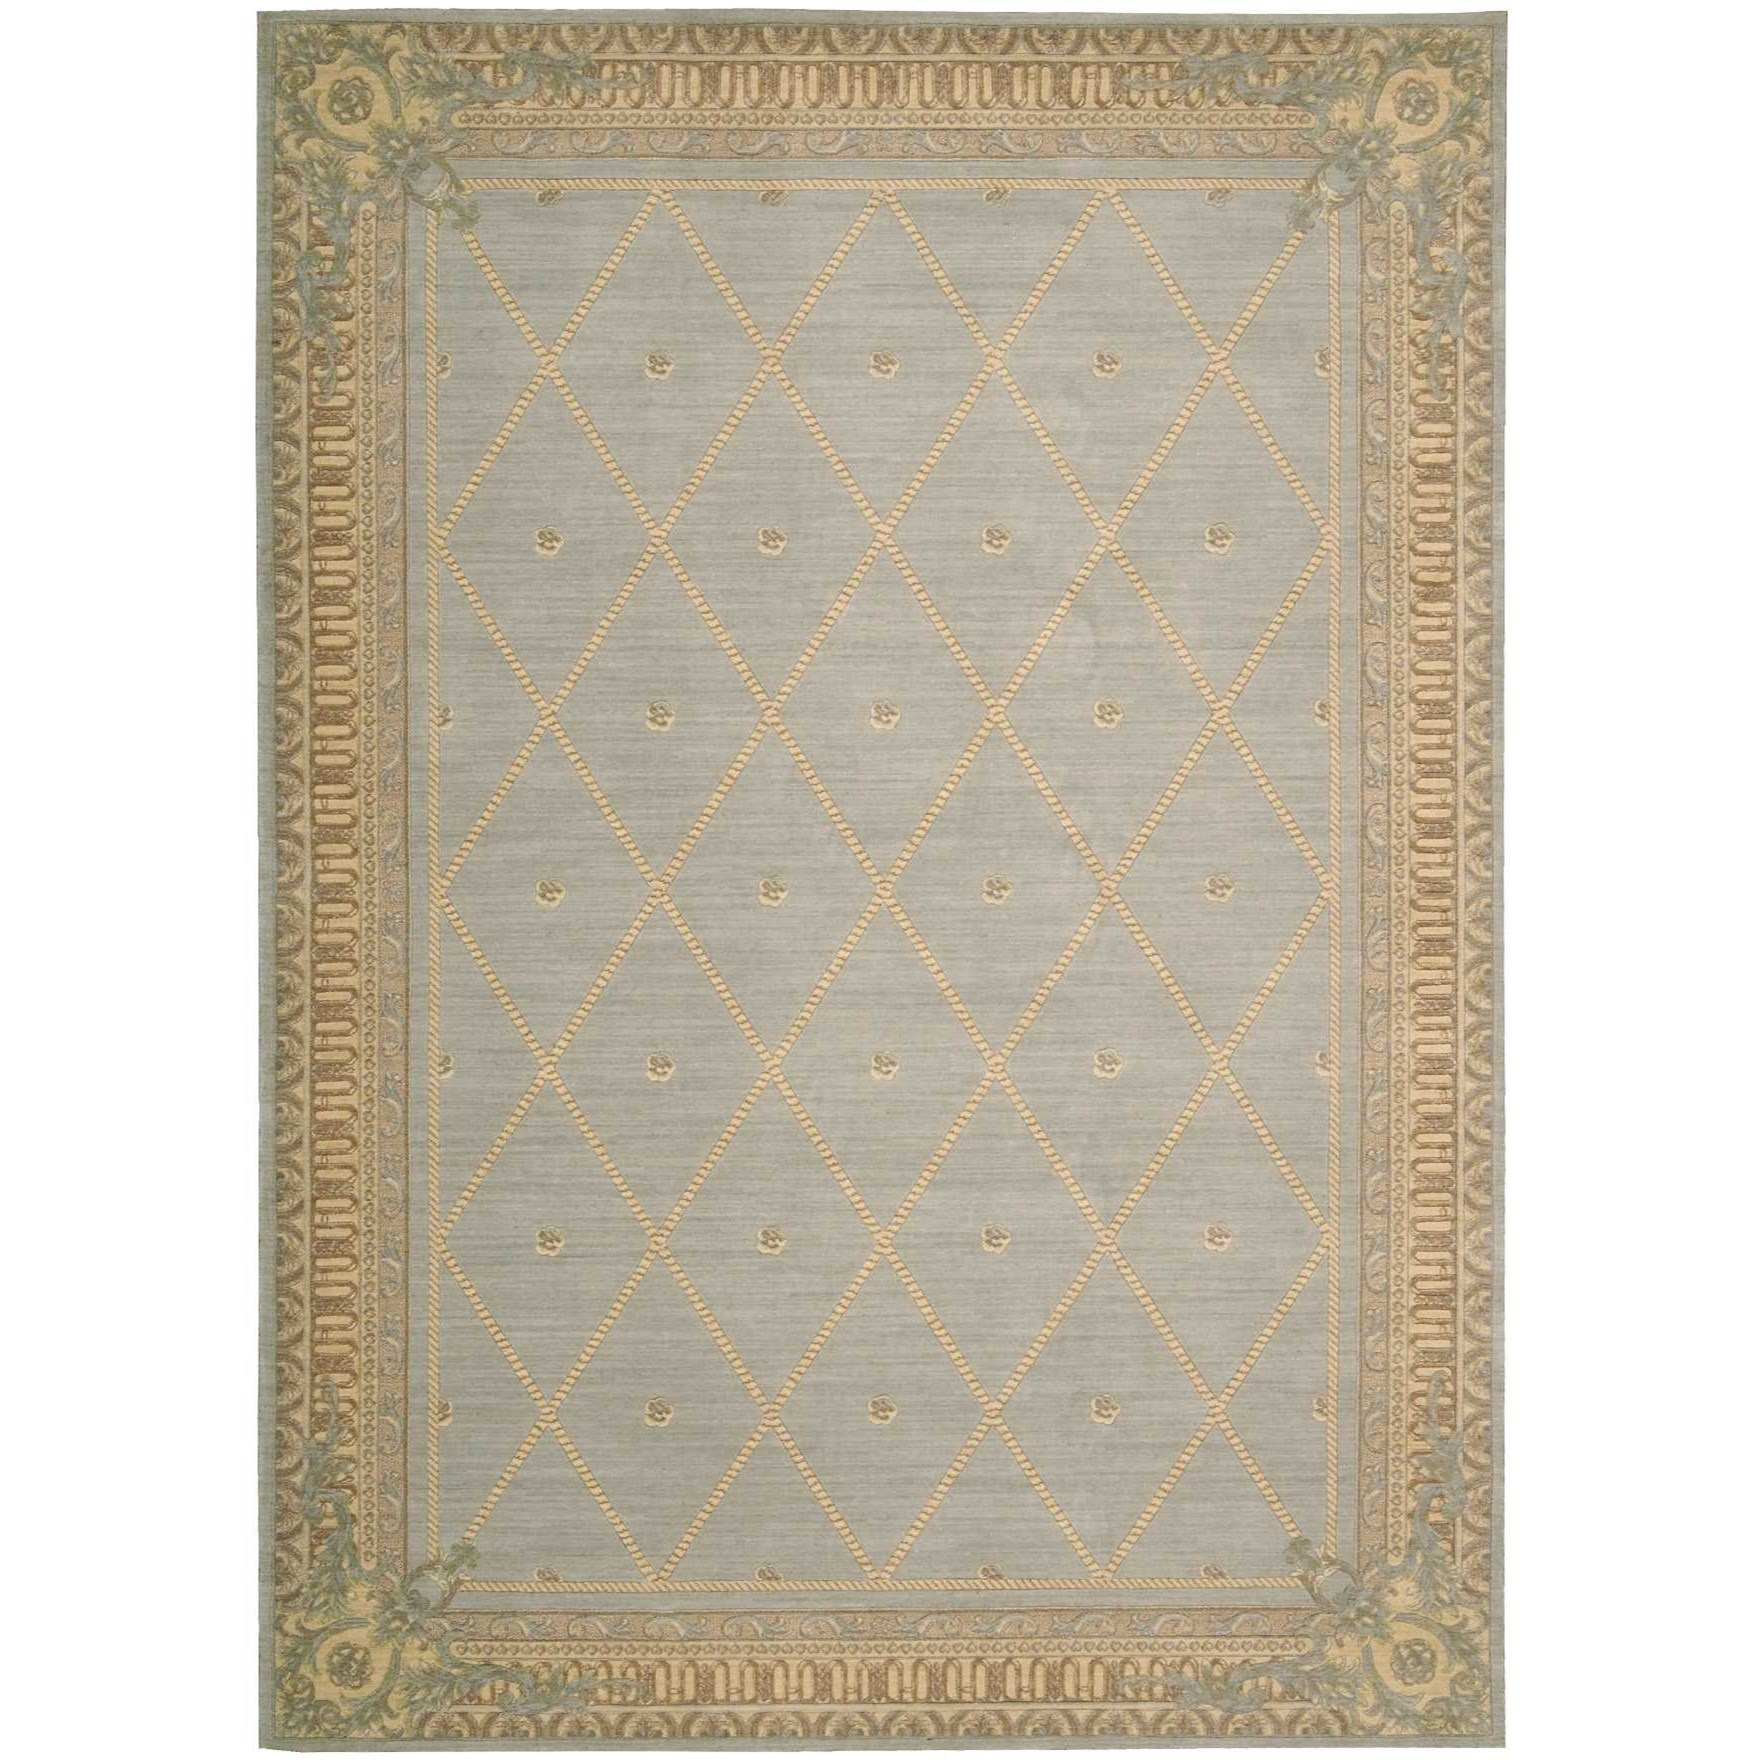 "9'6"" x 13' Surf Rectangle Rug"